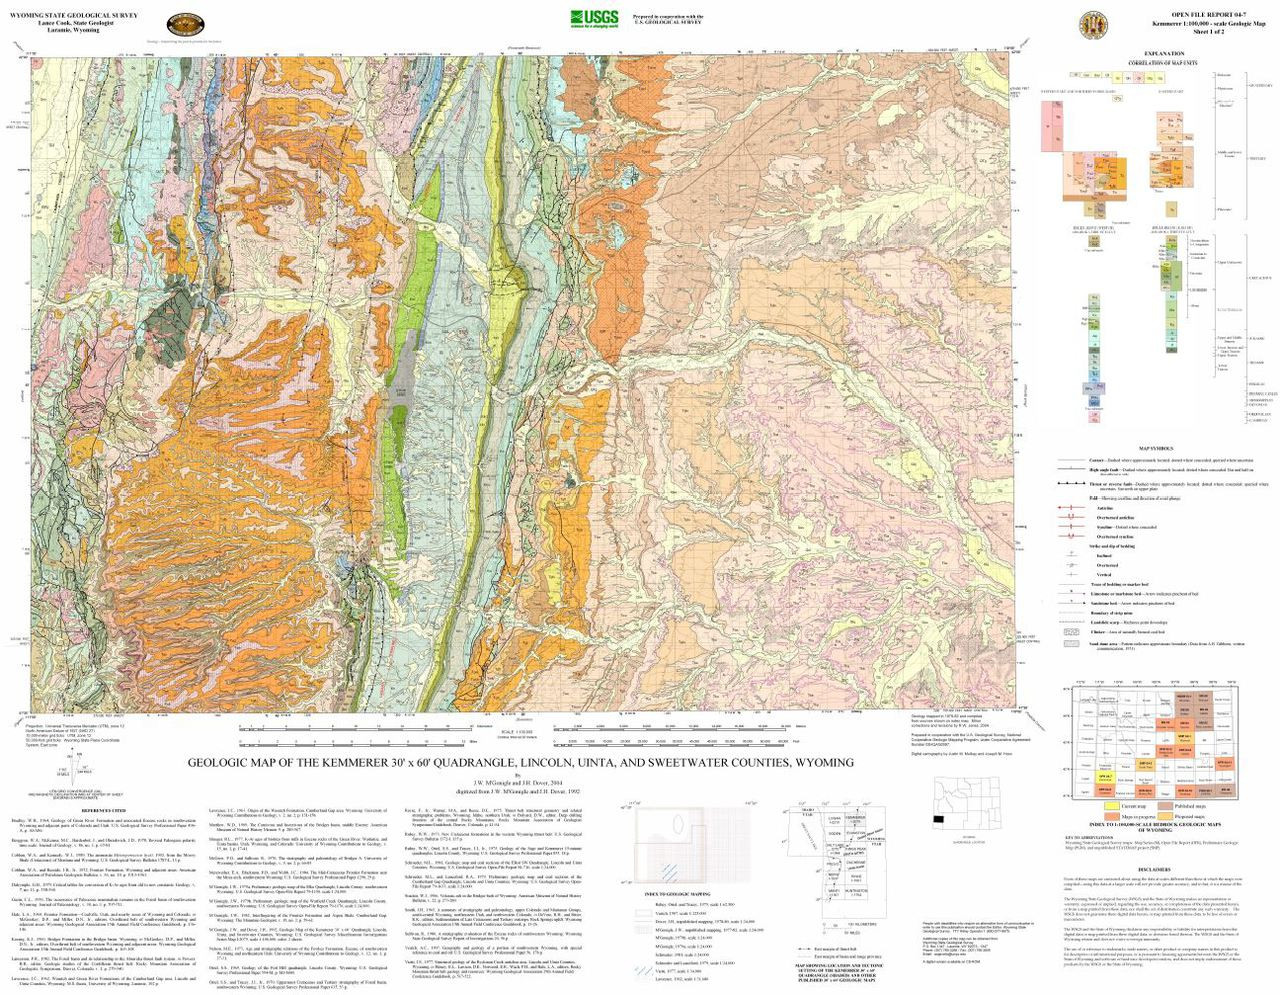 Kemmerer Wyoming Map.Geologic Map Of The Kemmerer 30 X 60 Quadrangle Lincoln Uinta